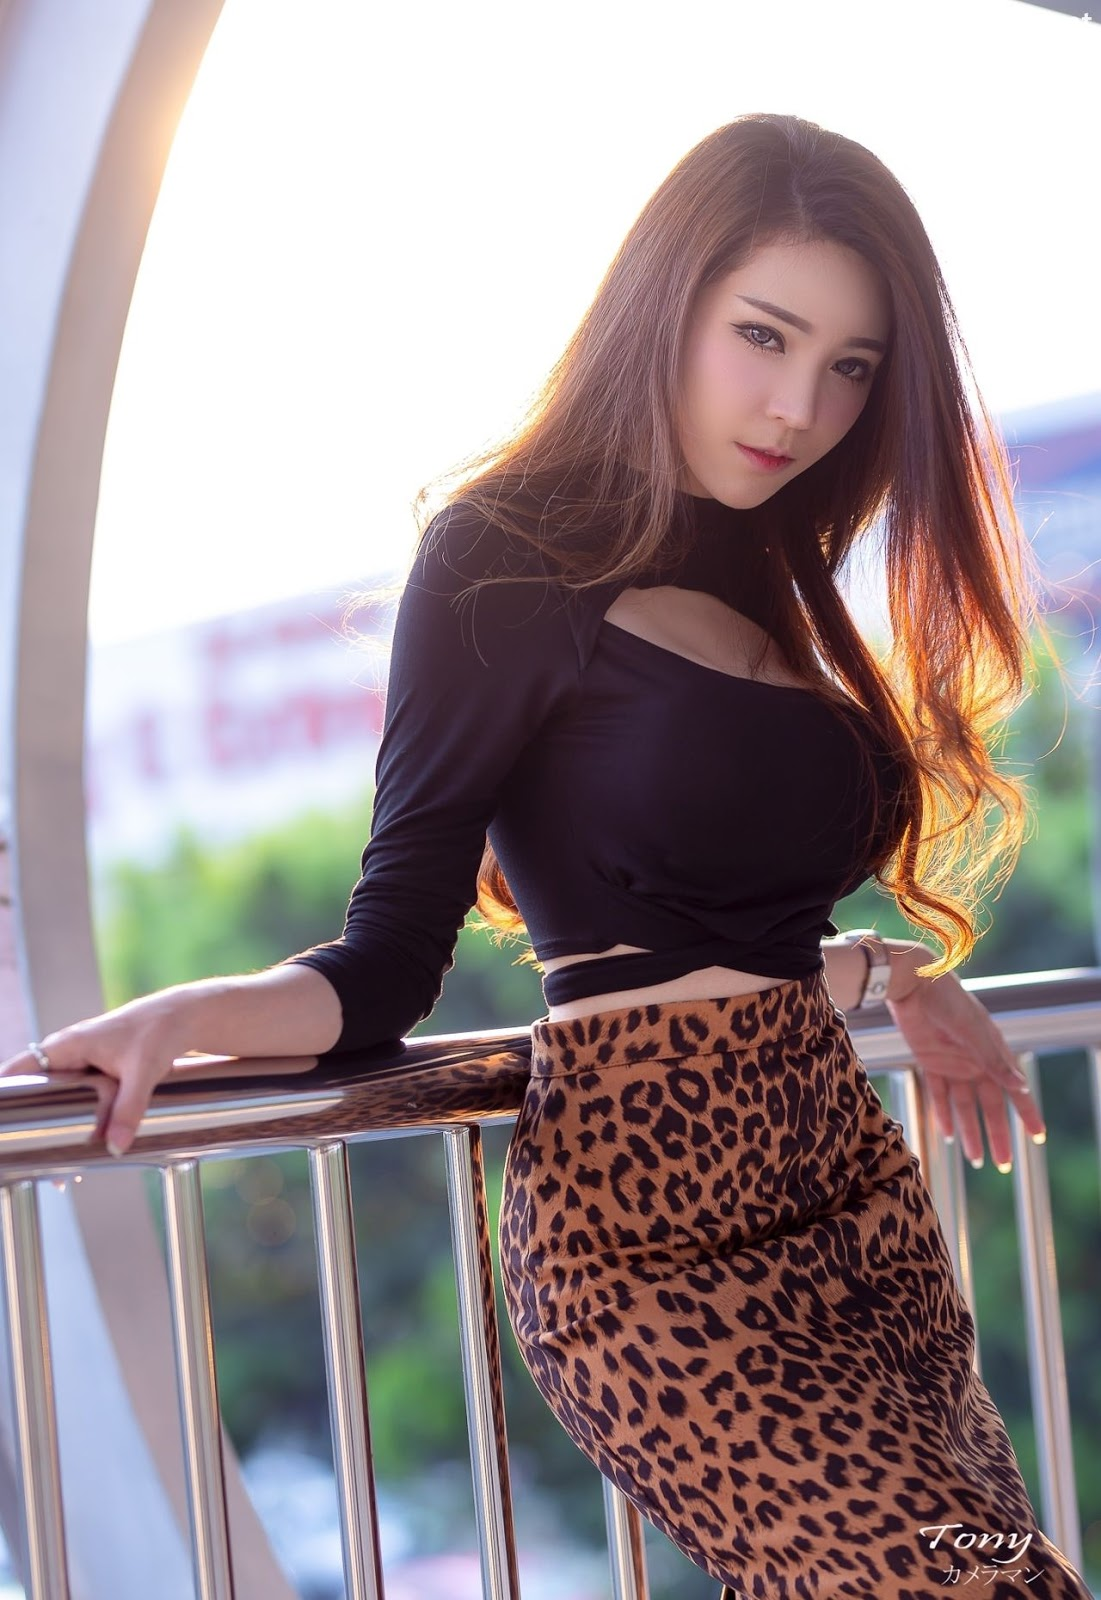 Image-Thailand-Hot-Model-Janet-Kanokwan-Saesim-Sexy-In-Black-And-Leopard-Fabric-TruePic.net- Picture-4